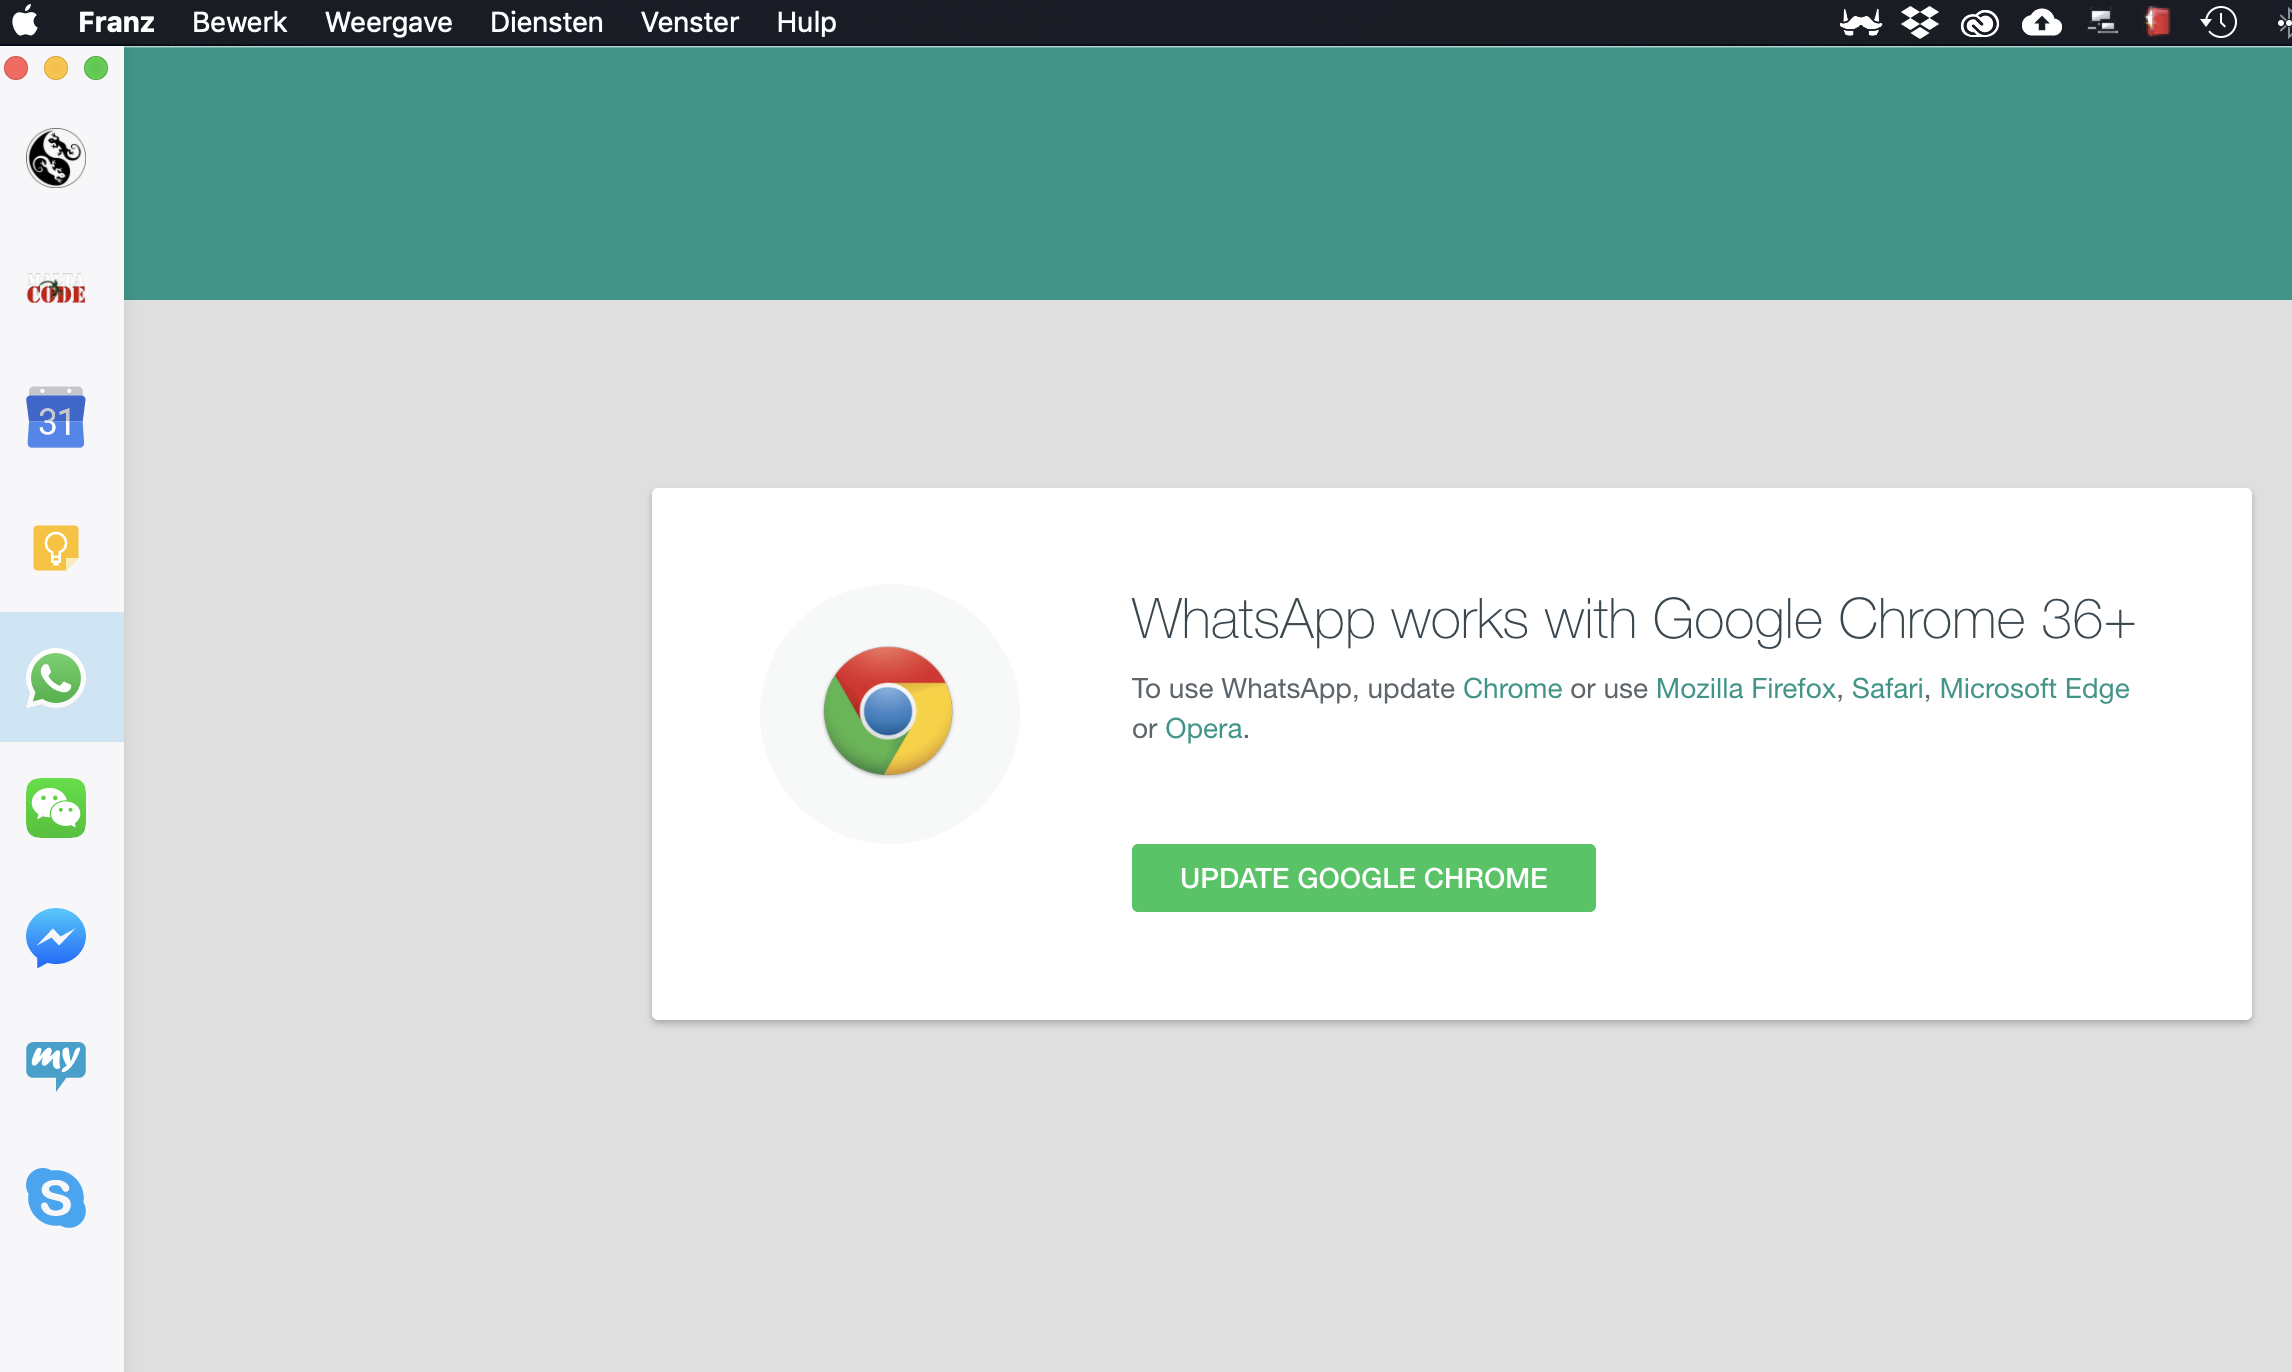 Whatapp will not start, claims Chrome Browser 36+ is required